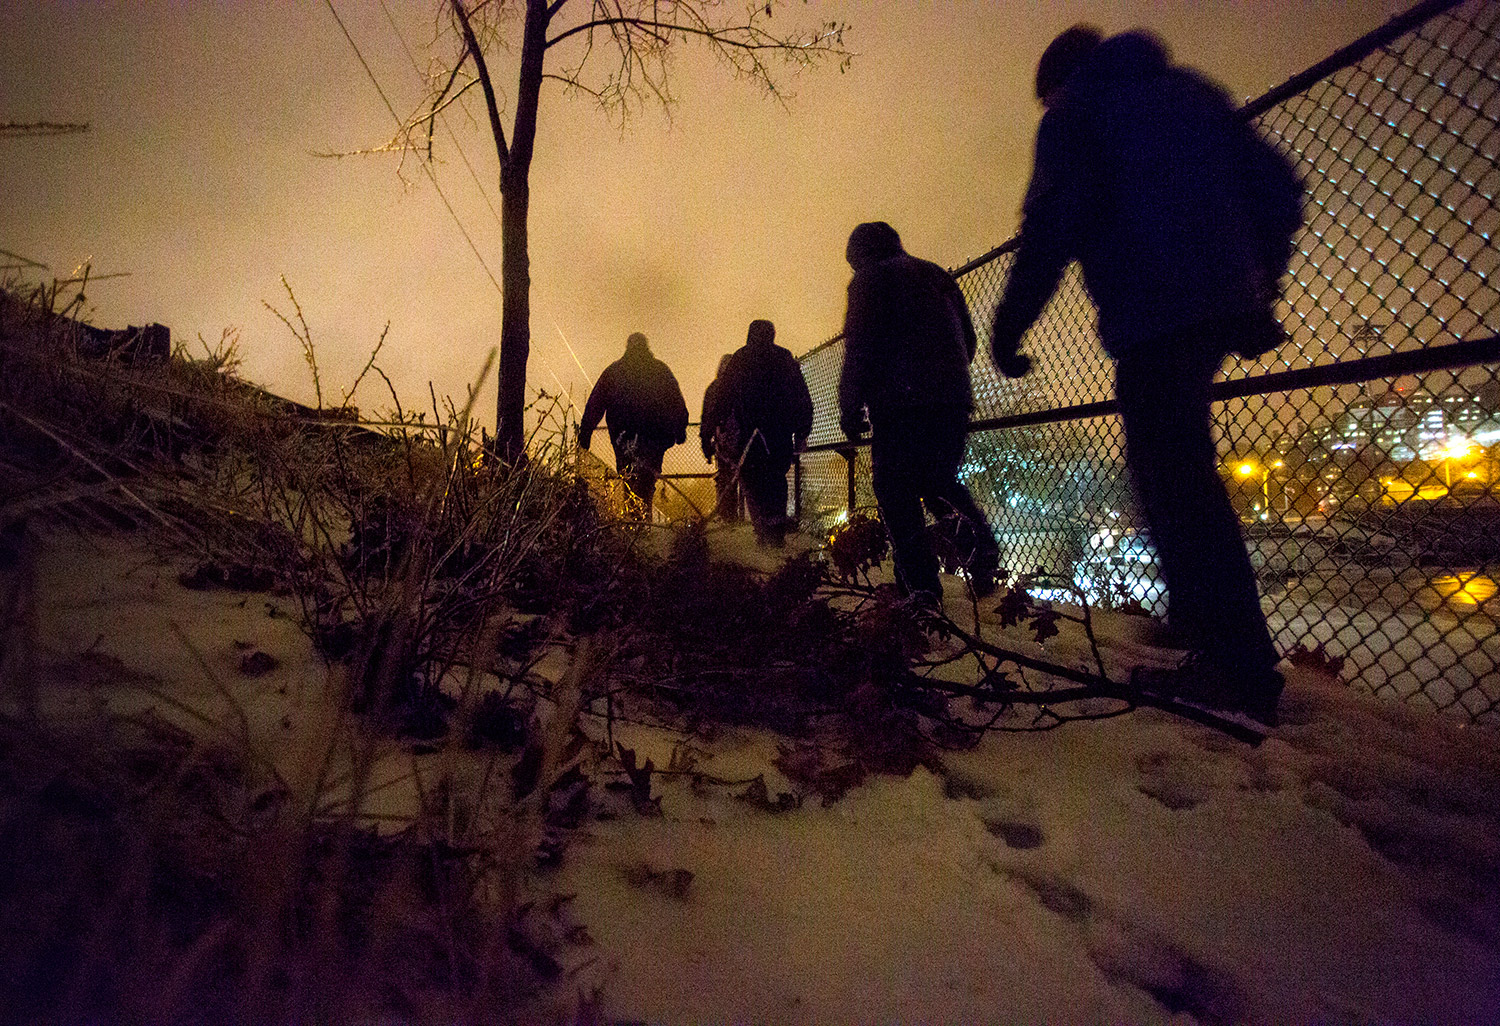 A team led by Oxford Street Shelter director Rob Parritt canvasses an Interstate 295 overpass near Fitzpatrick Stadium on Tuesday night during the annual point-in-time homeless count.